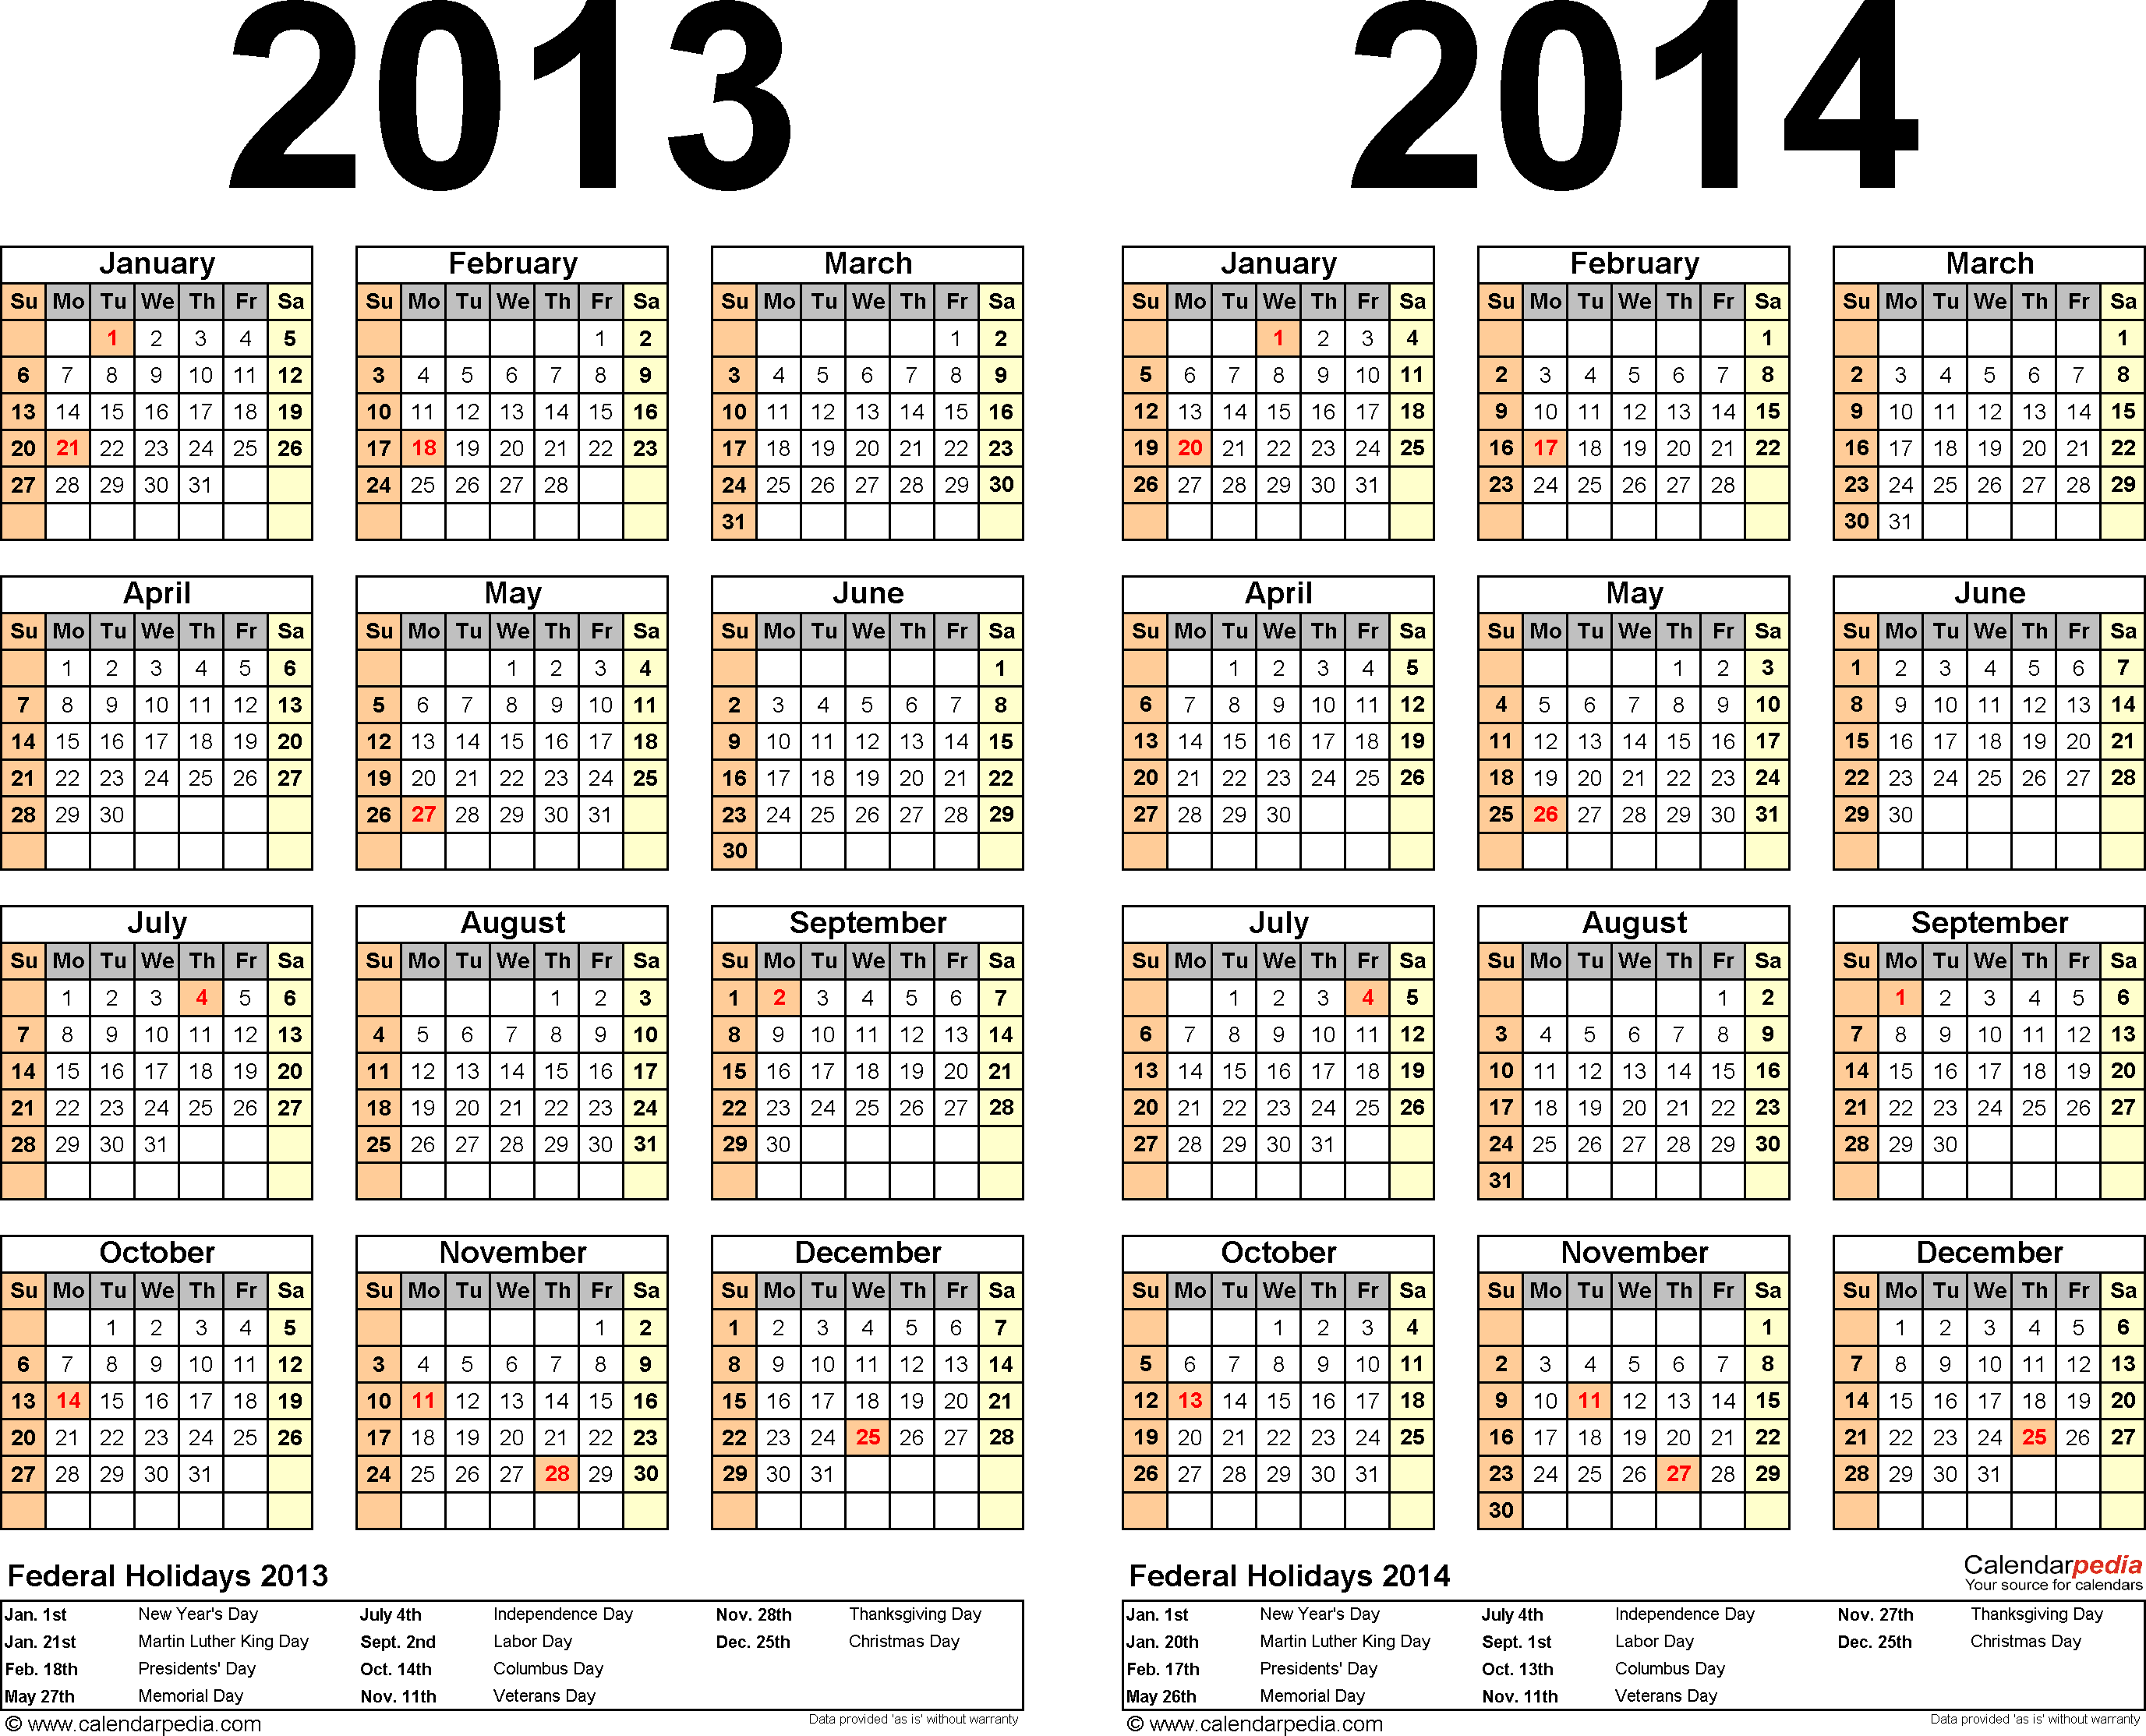 Template 2: PDF template for two year calendar 2013/2014 (landscape orientation, 1 page)